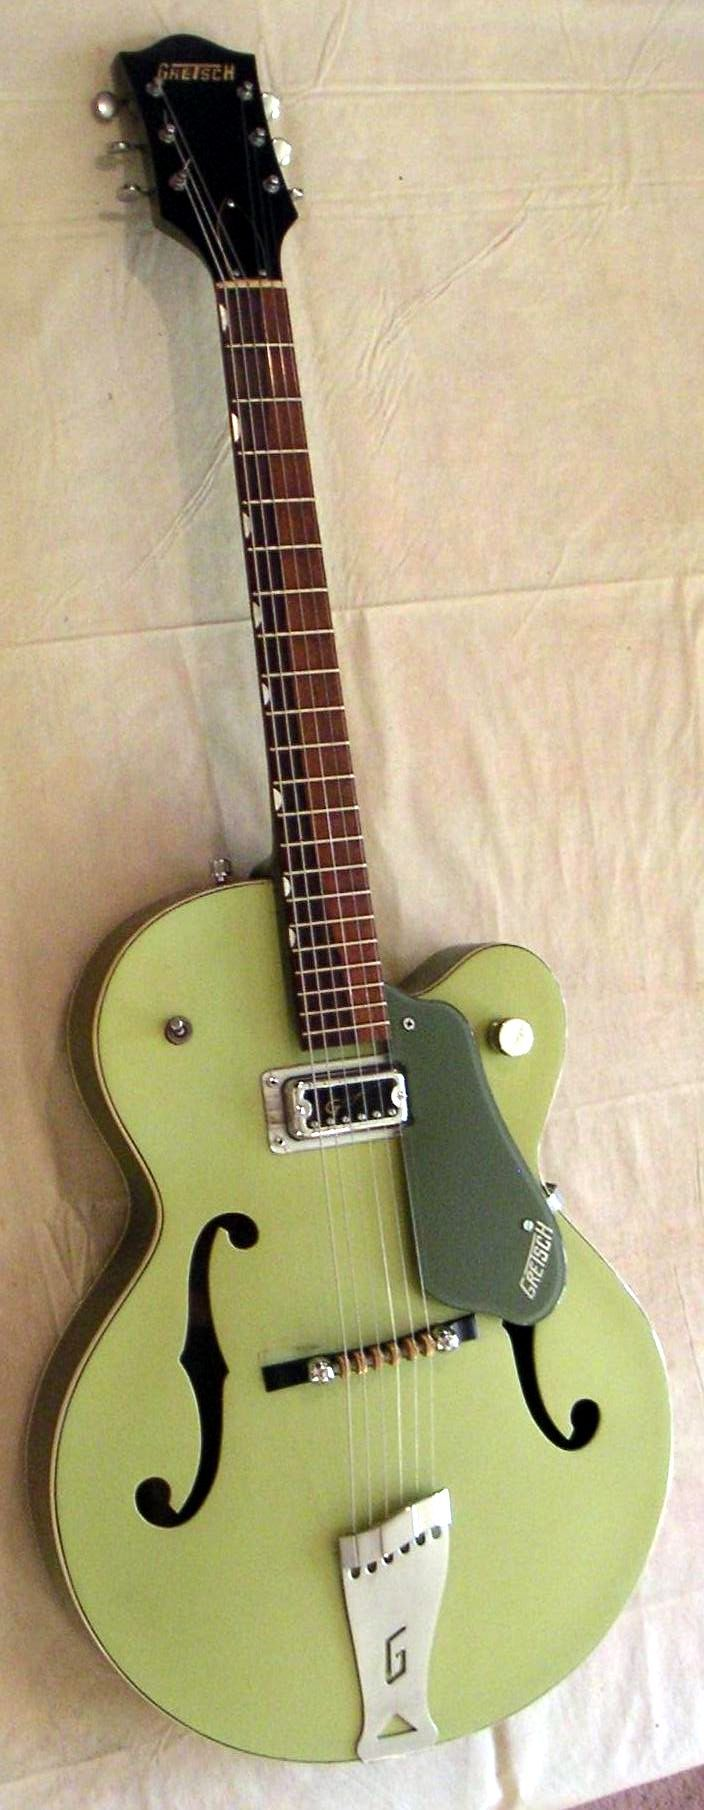 Gretsch Anniversary 6125 1961 - classic TV green. it made a perfect shade of grey that looked great on black & white TV broadcasts. even more classic sound!